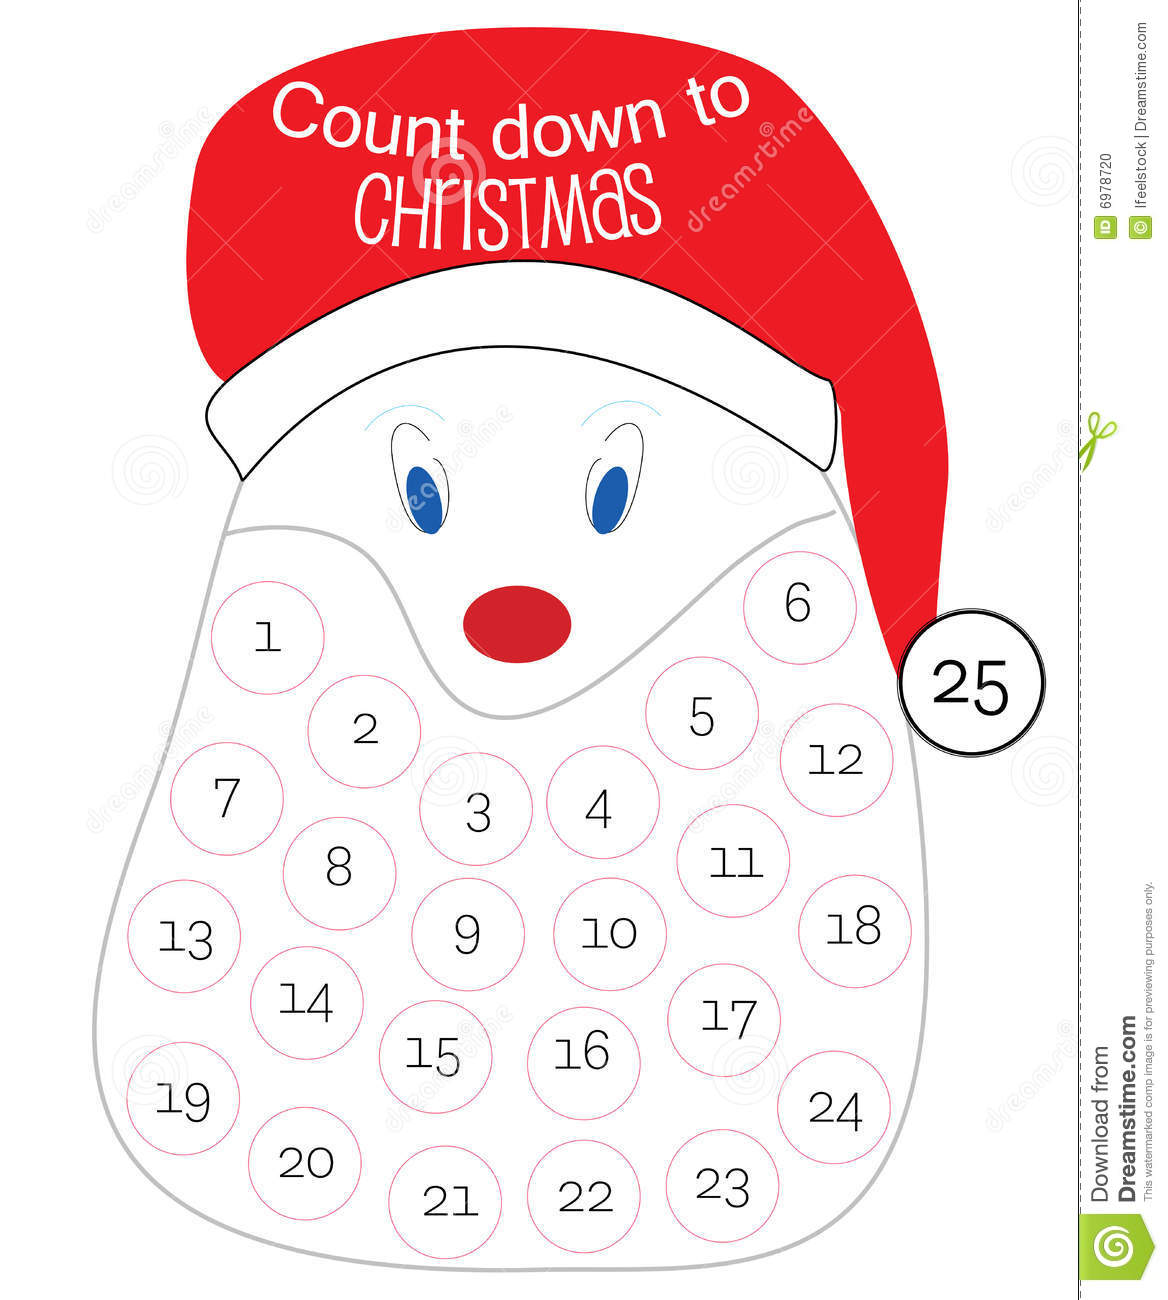 Countdown Till Christmas.Countdown Till Christmas Stock Vector Illustration Of Claus